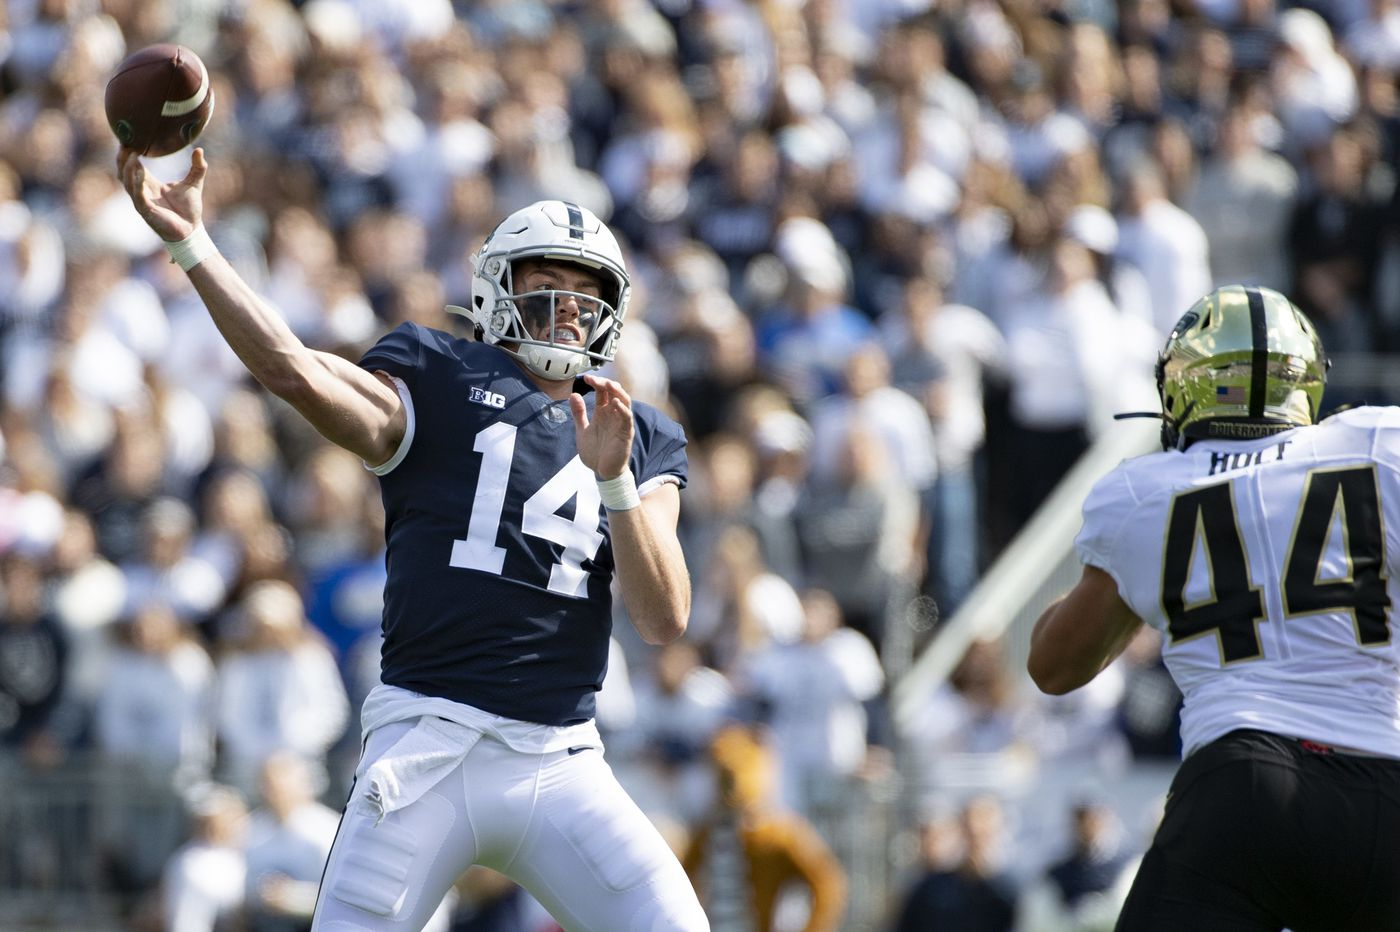 Three takeaways from Penn State's 35-7 victory over Purdue